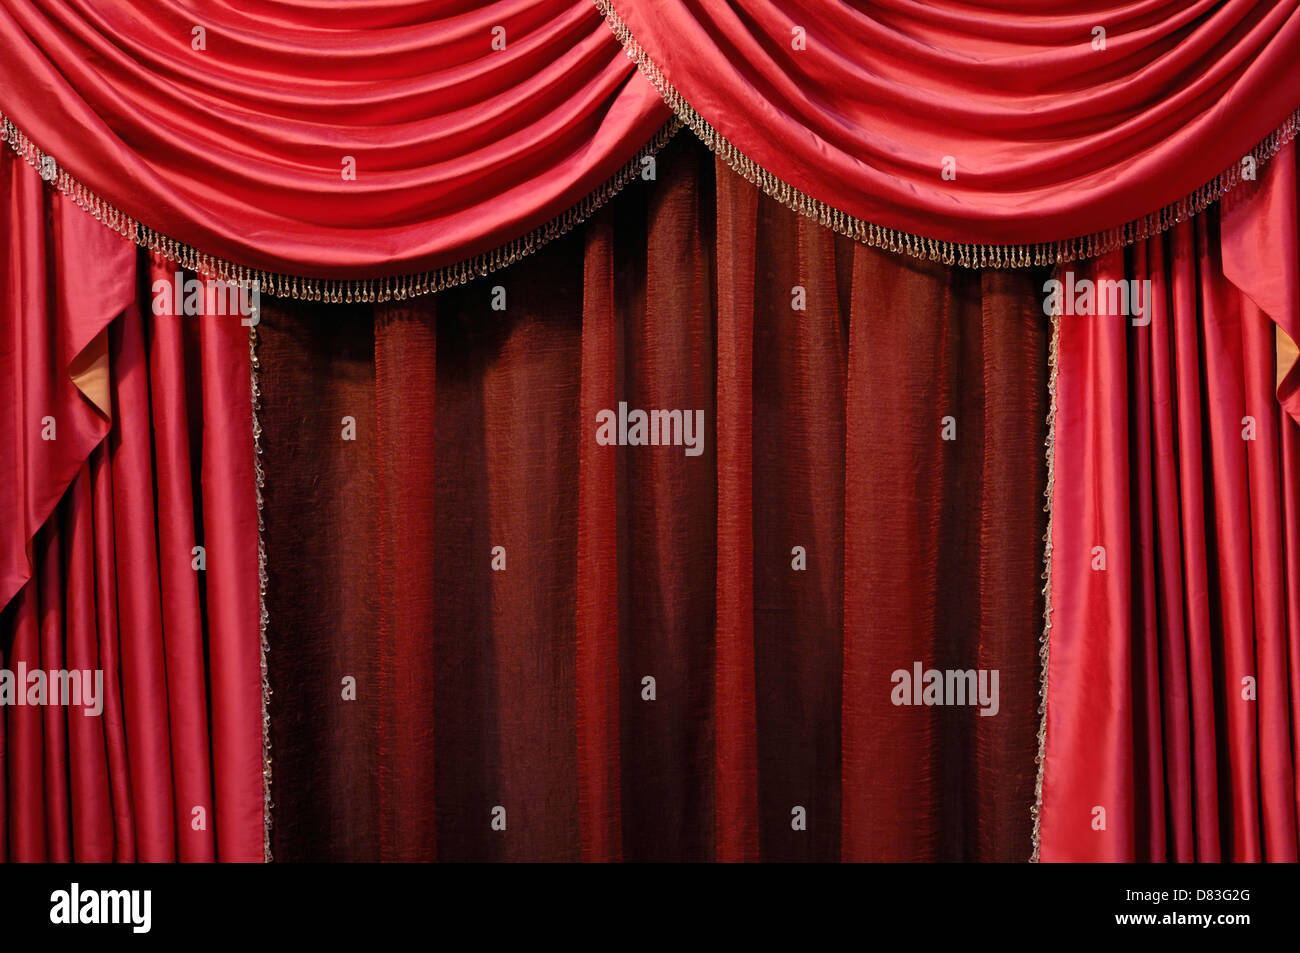 Red curtain background - Stock Image